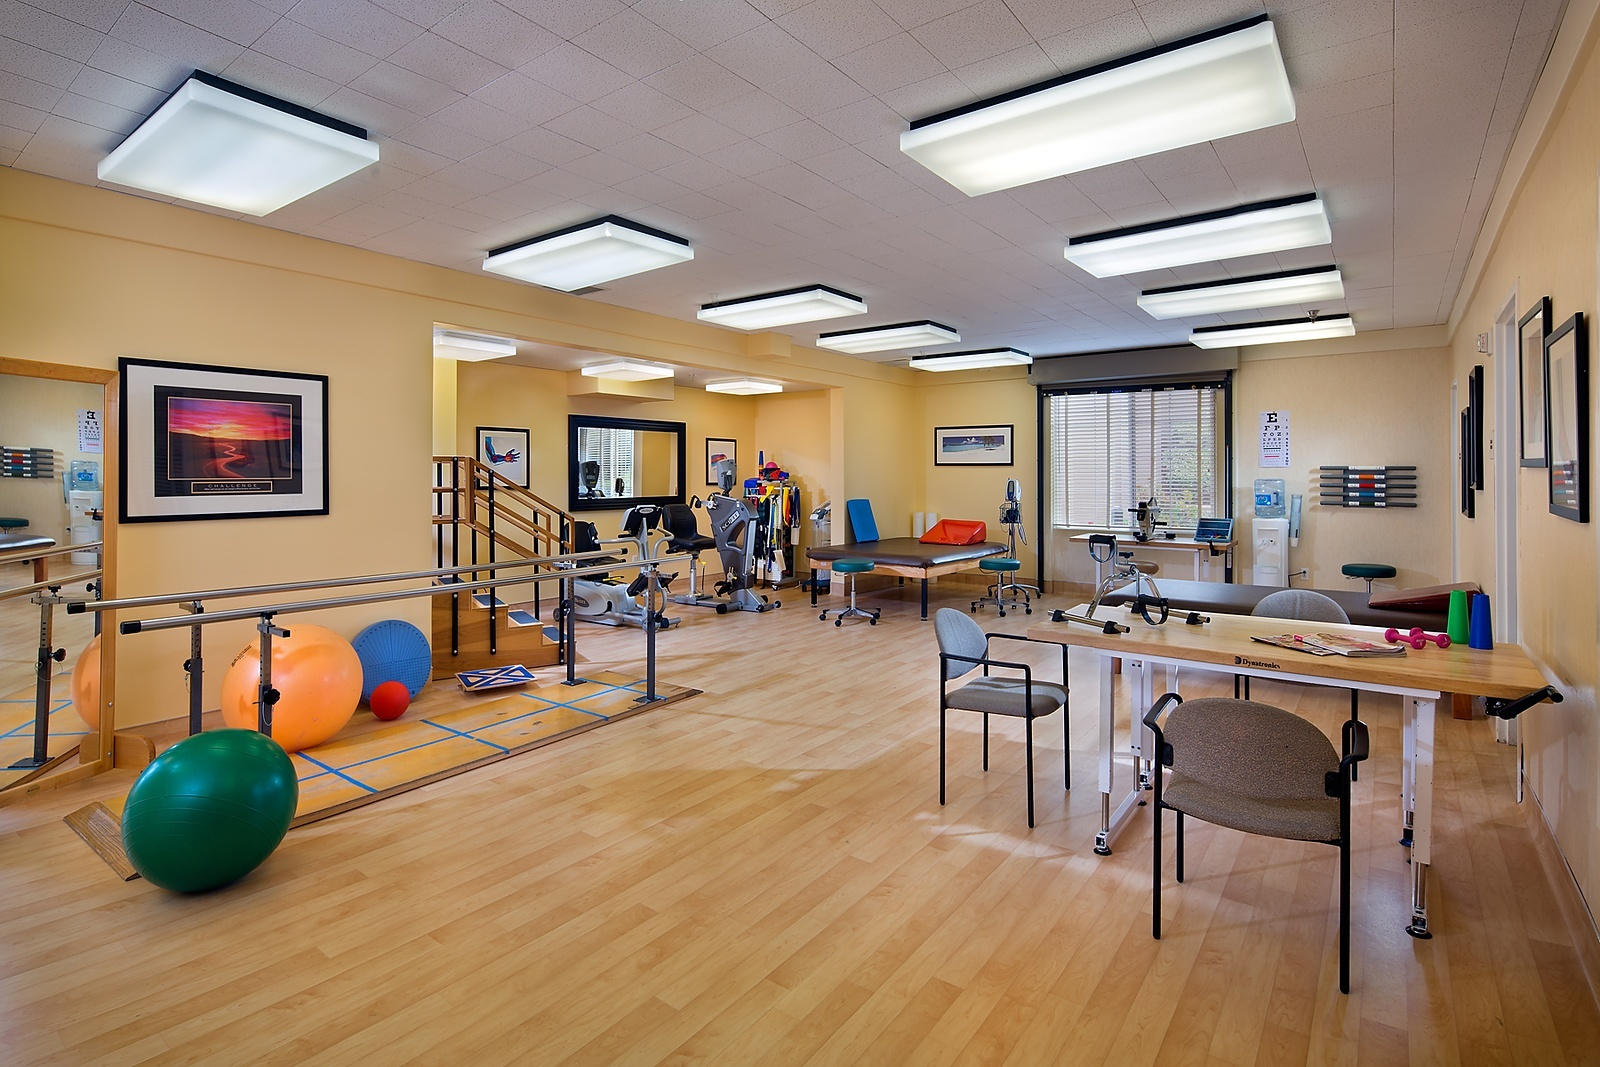 1518-08-Rehab-Glenbrook-Health-Center-Olson_EricFiggePhotos